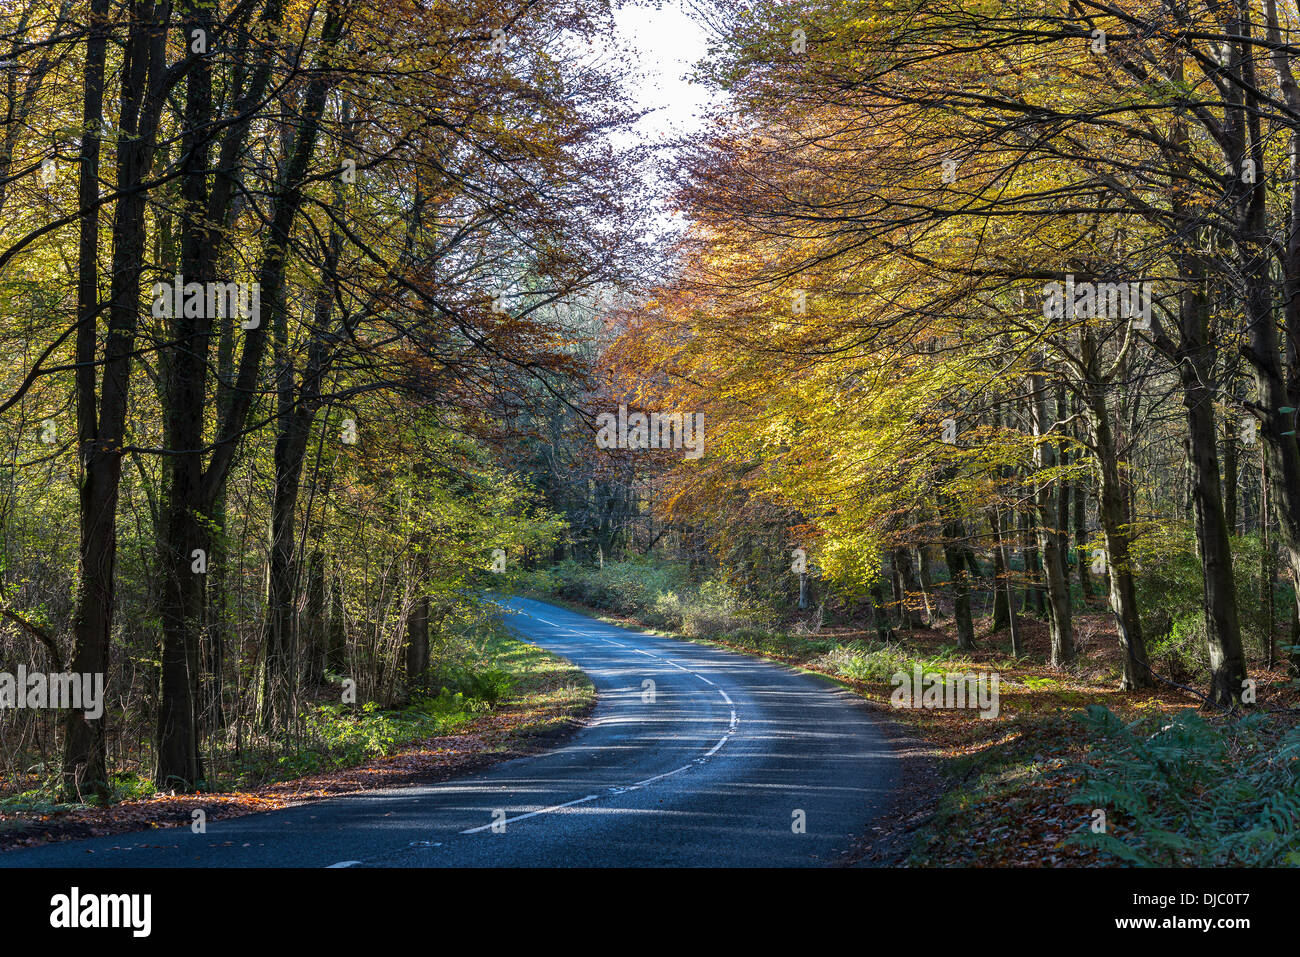 Bend in road in Tidenham Chase, Forest of Dean, Gloucestershire England UK with fallen leaves - Stock Image